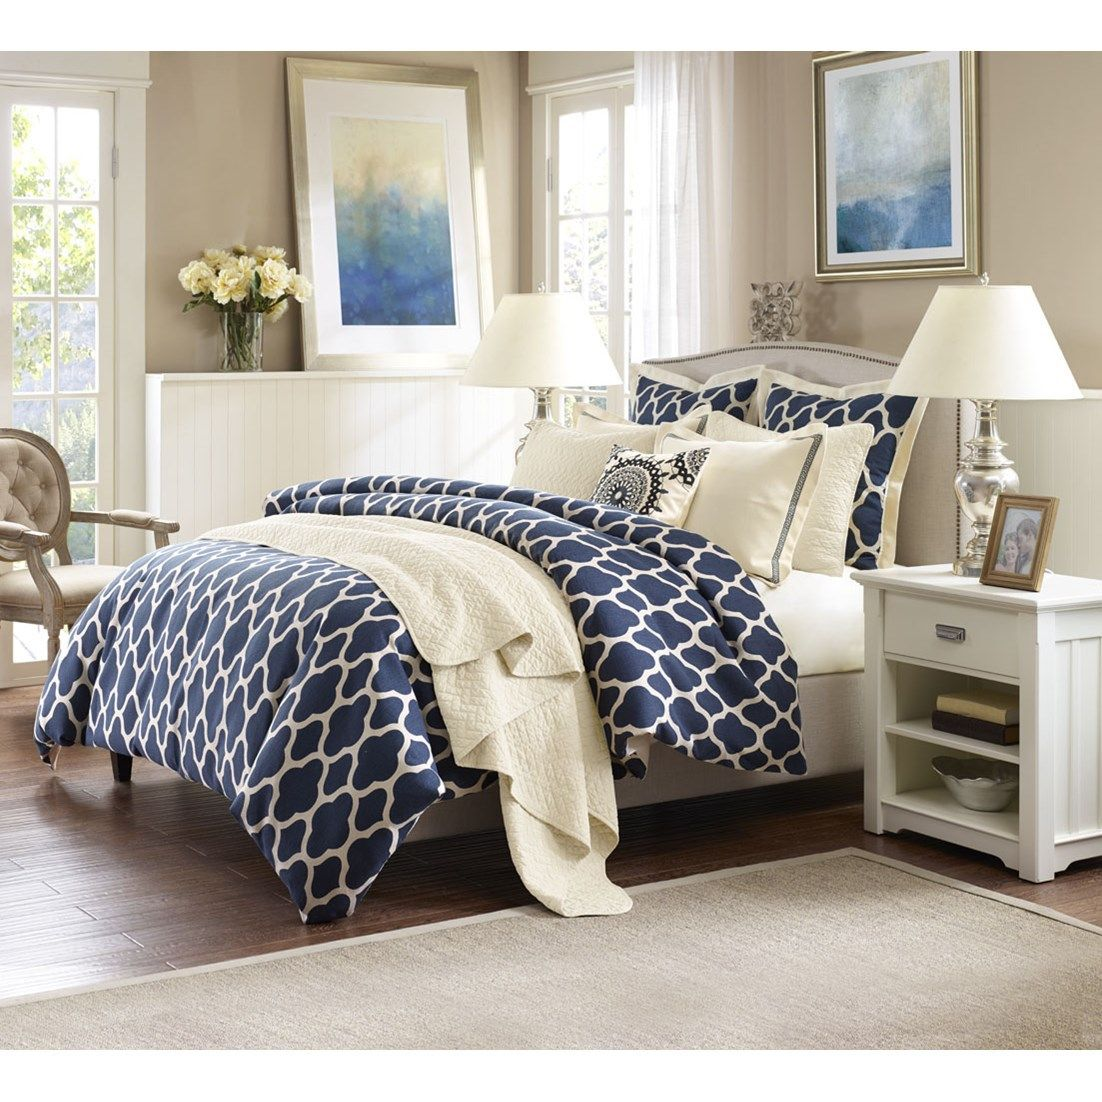 Elegance and luxury can be created in your seaside bedroom